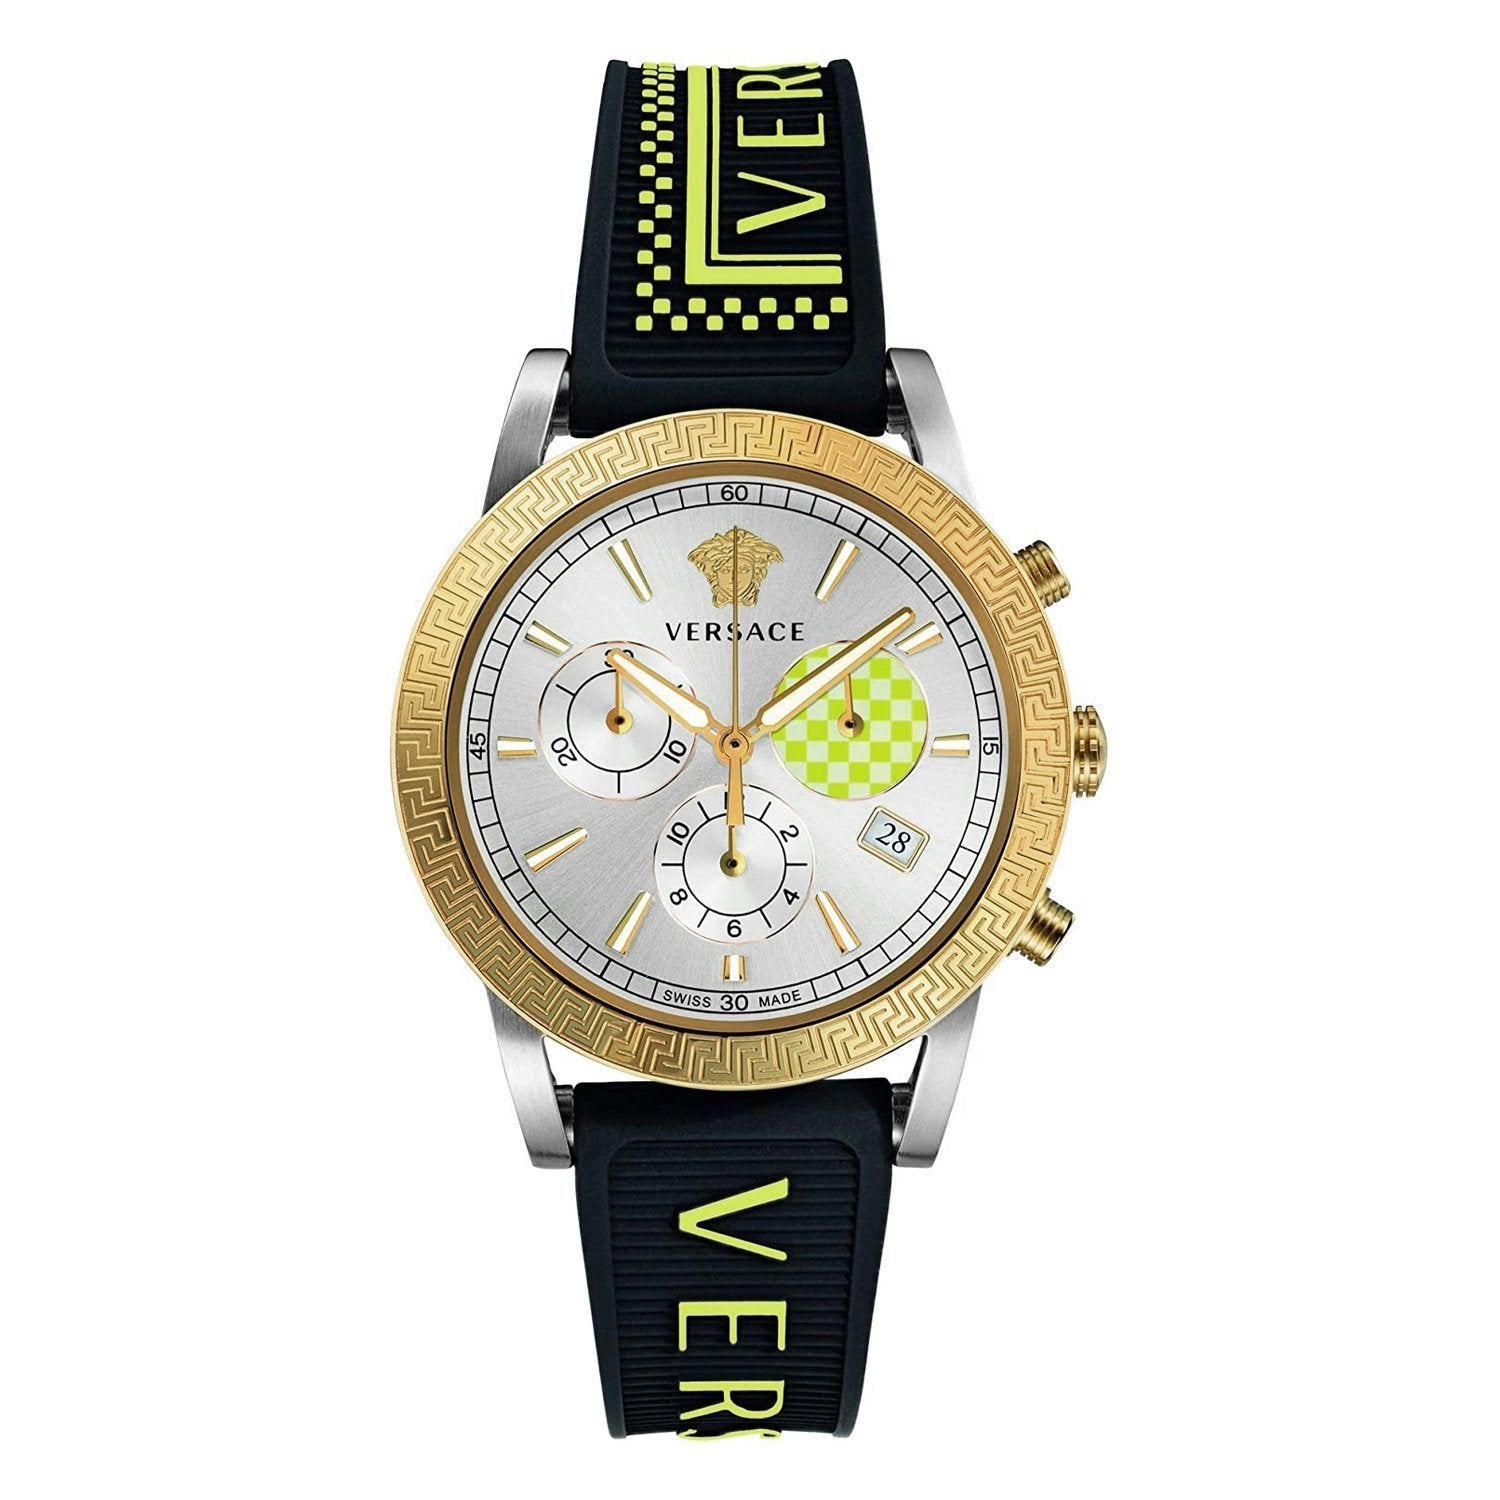 Versace Sports Tech Chronograph Silver - Watches & Crystals